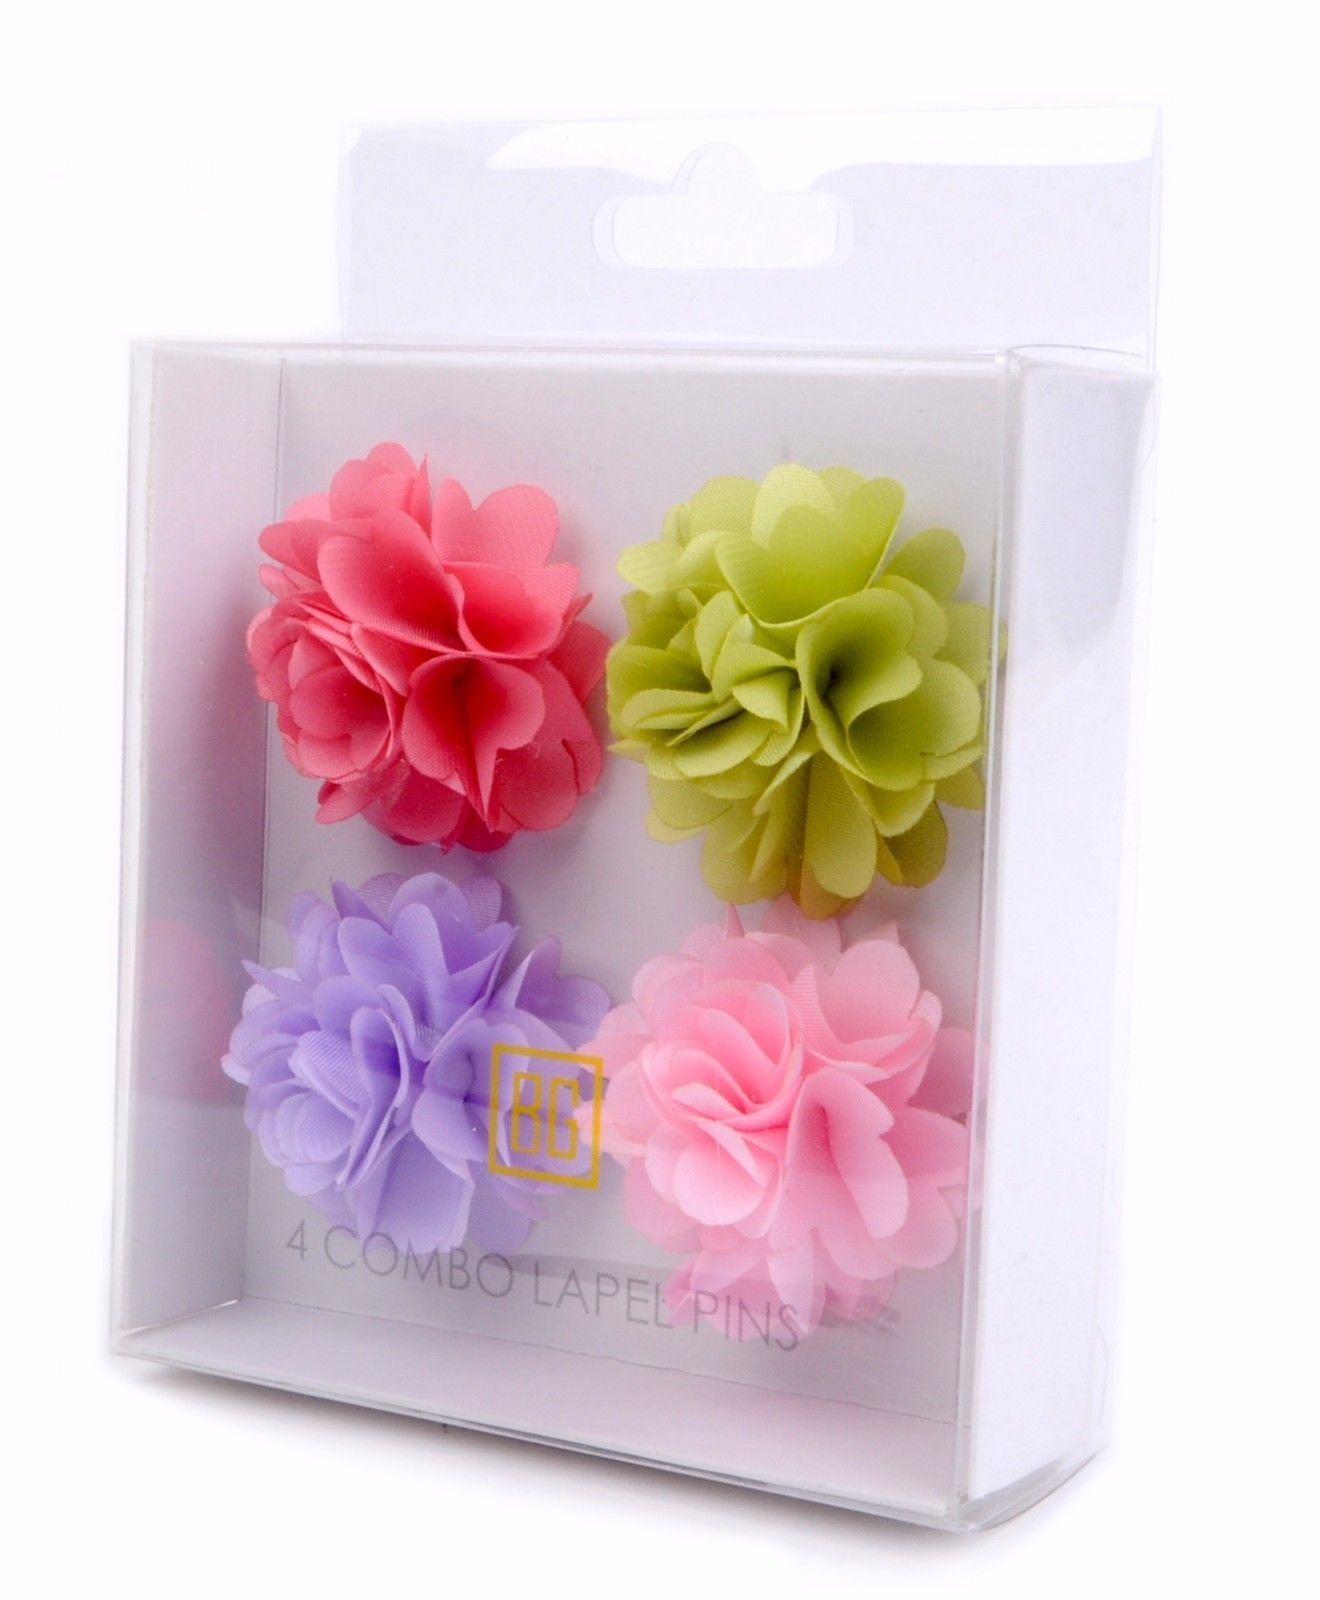 BG-Mini-Bouquet-Clutch-Back-Flower-Tuxedo-Suit-Lapel-Pins-Boutonniere-4-Pack-Set thumbnail 14